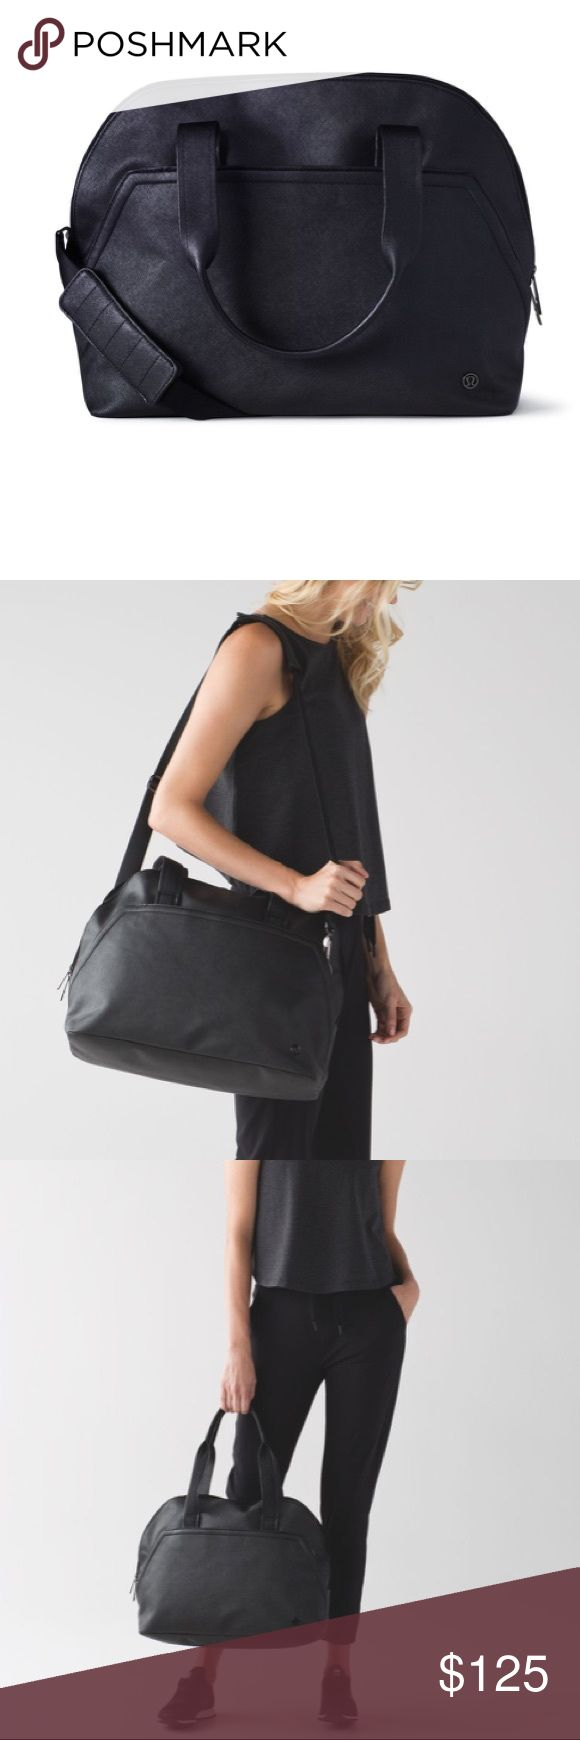 Lululemon Yin Time Bag Incredible gym bag that can be dressed up or down Textured faux leather is easy to clean and durable Tons of pockets including padded laptop pocket Can be worn as shoulder bag or crossbody Hideaway yoga mat carry straps EUC lululemon athletica Bags